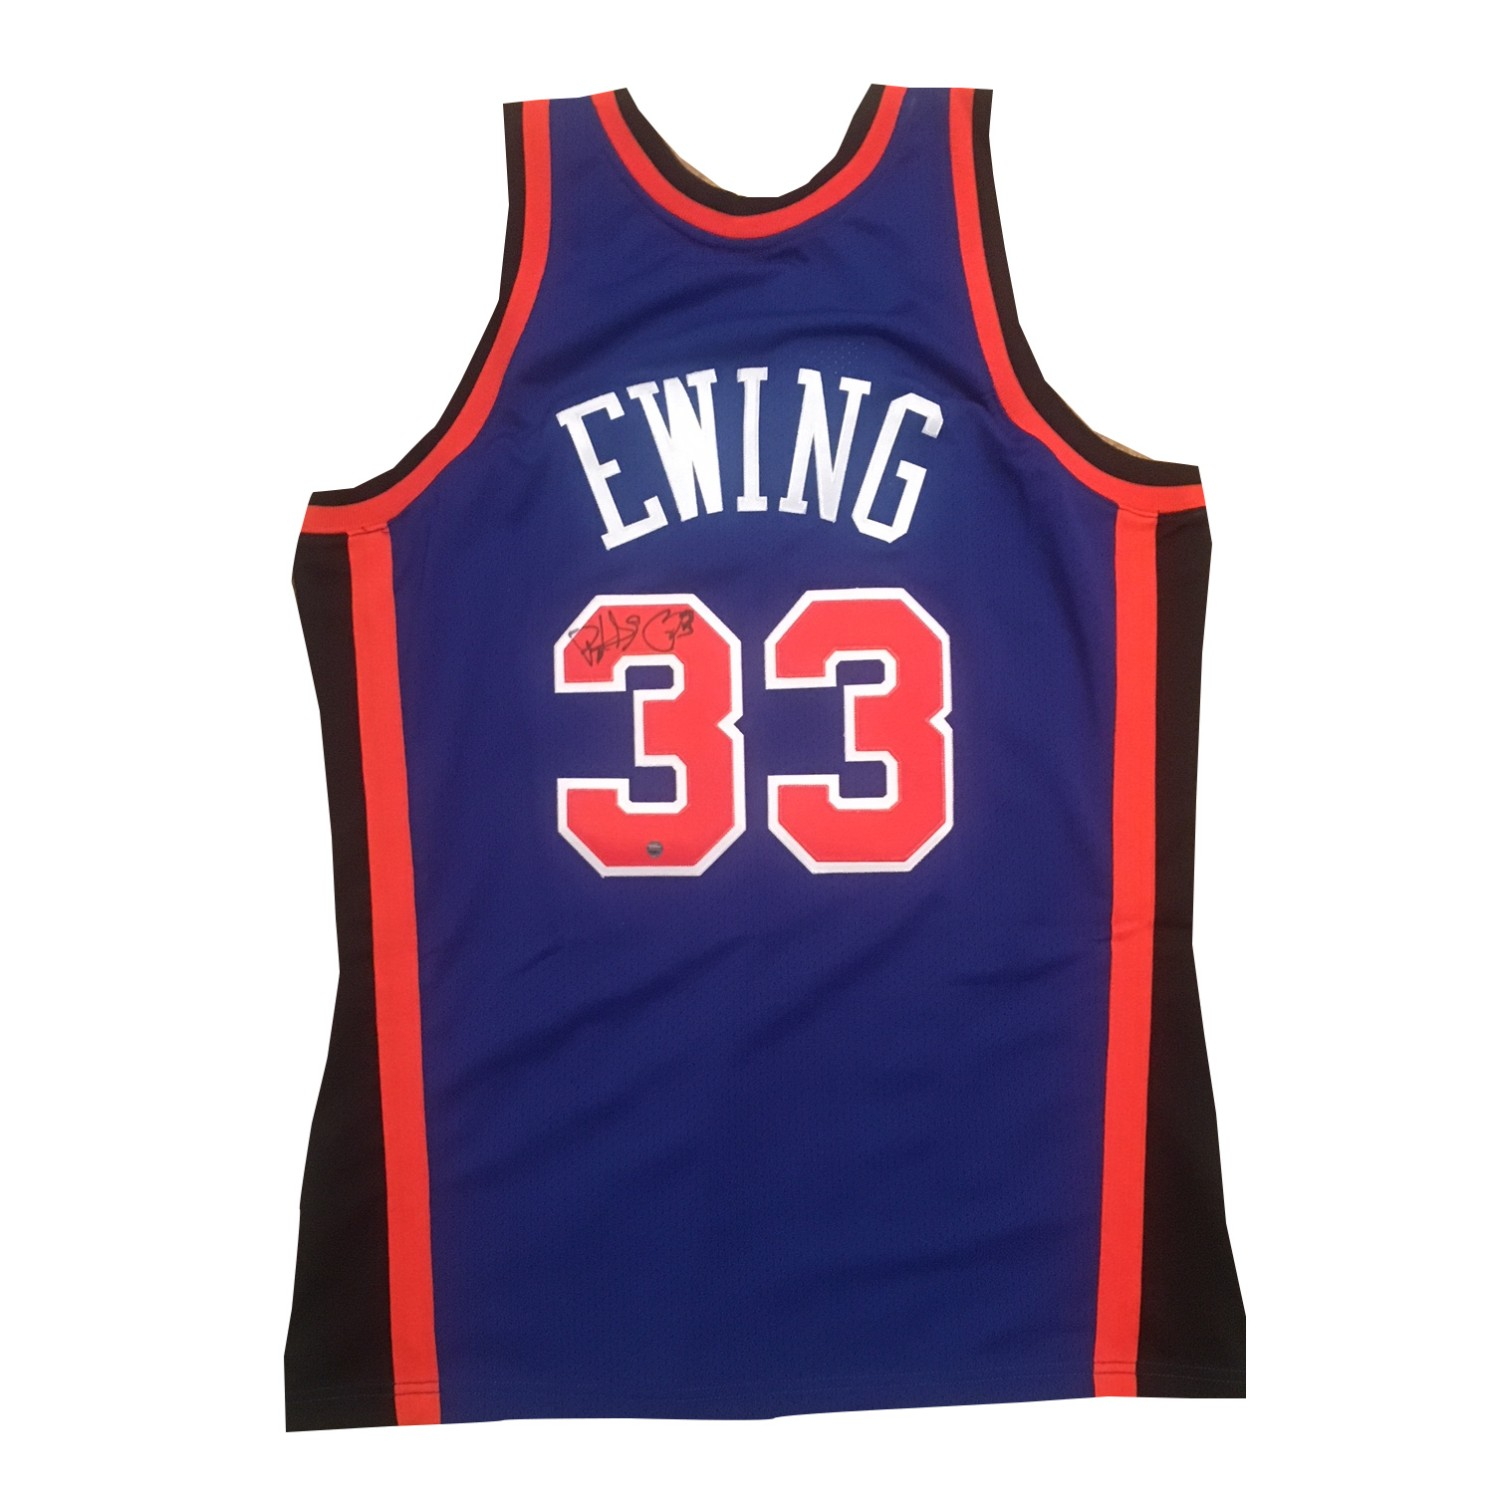 72522ce9b5ebf Patrick Ewing Autographed Knicks Signed Authentic Mitchell Ness Signed  Jersey Steiner Sports COA